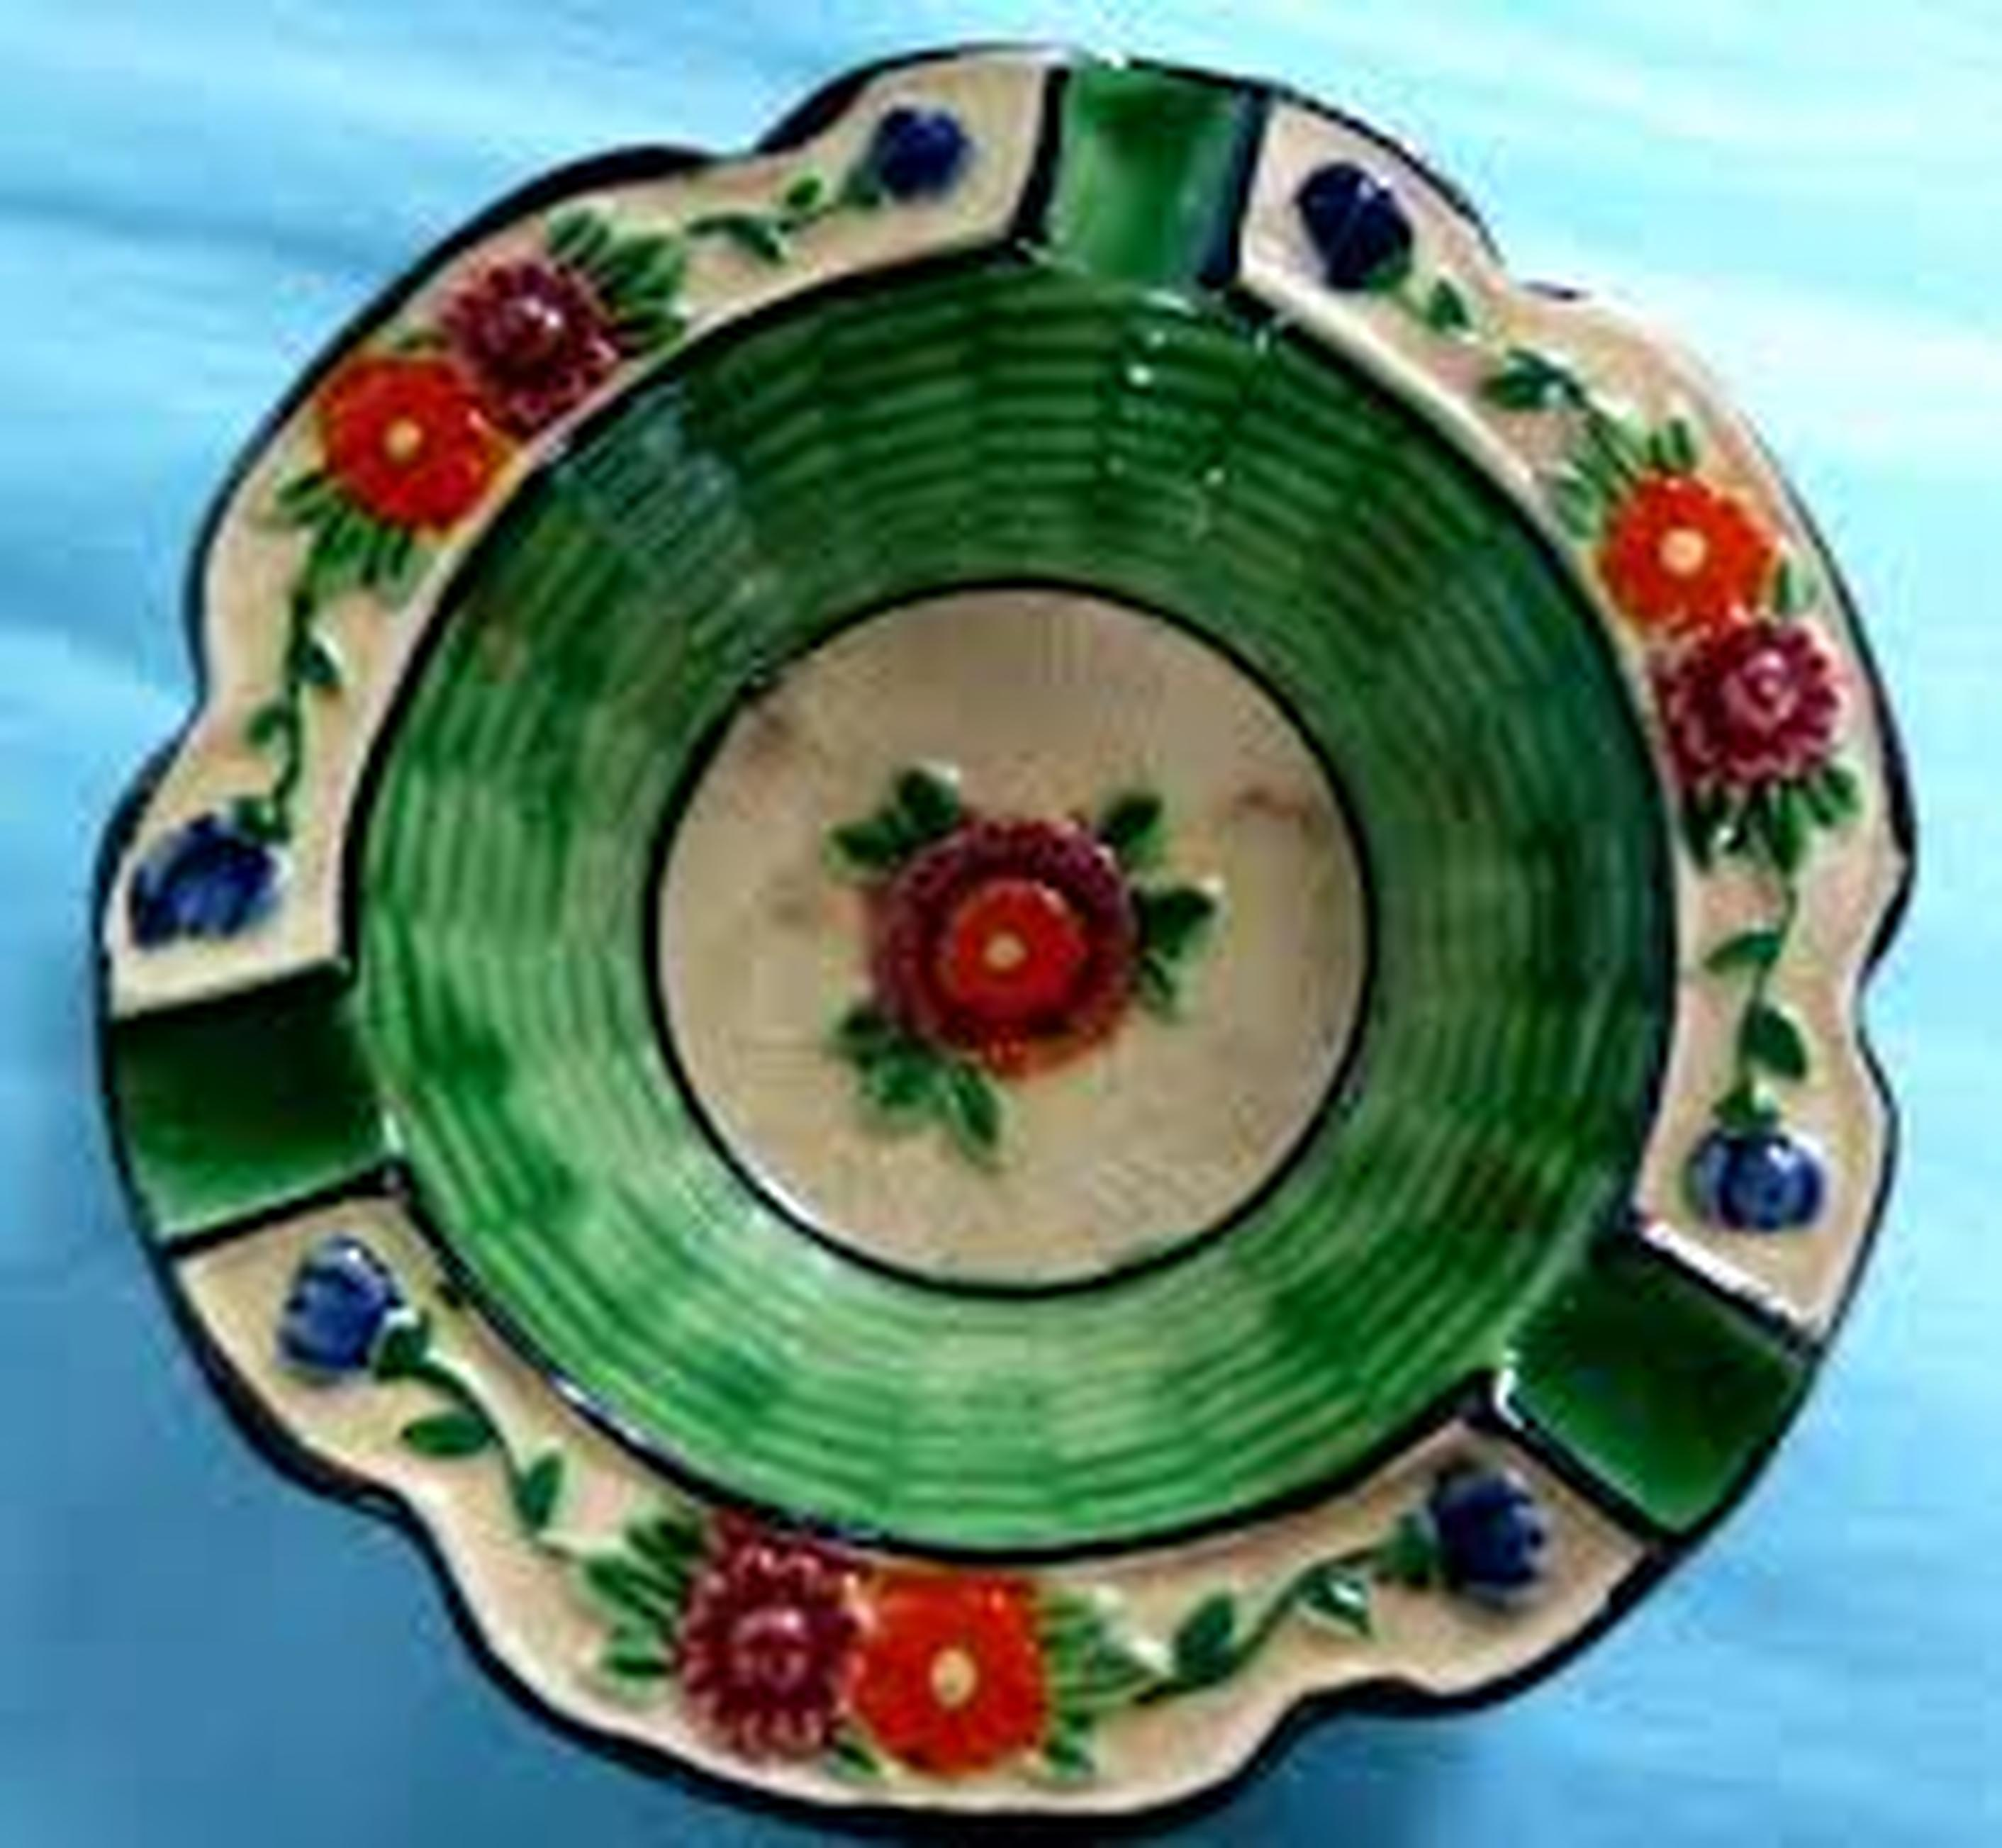 1910s - 1920s Maruhon ware ashtray ($22) Made in Japan. Hand painted. D: 115mm